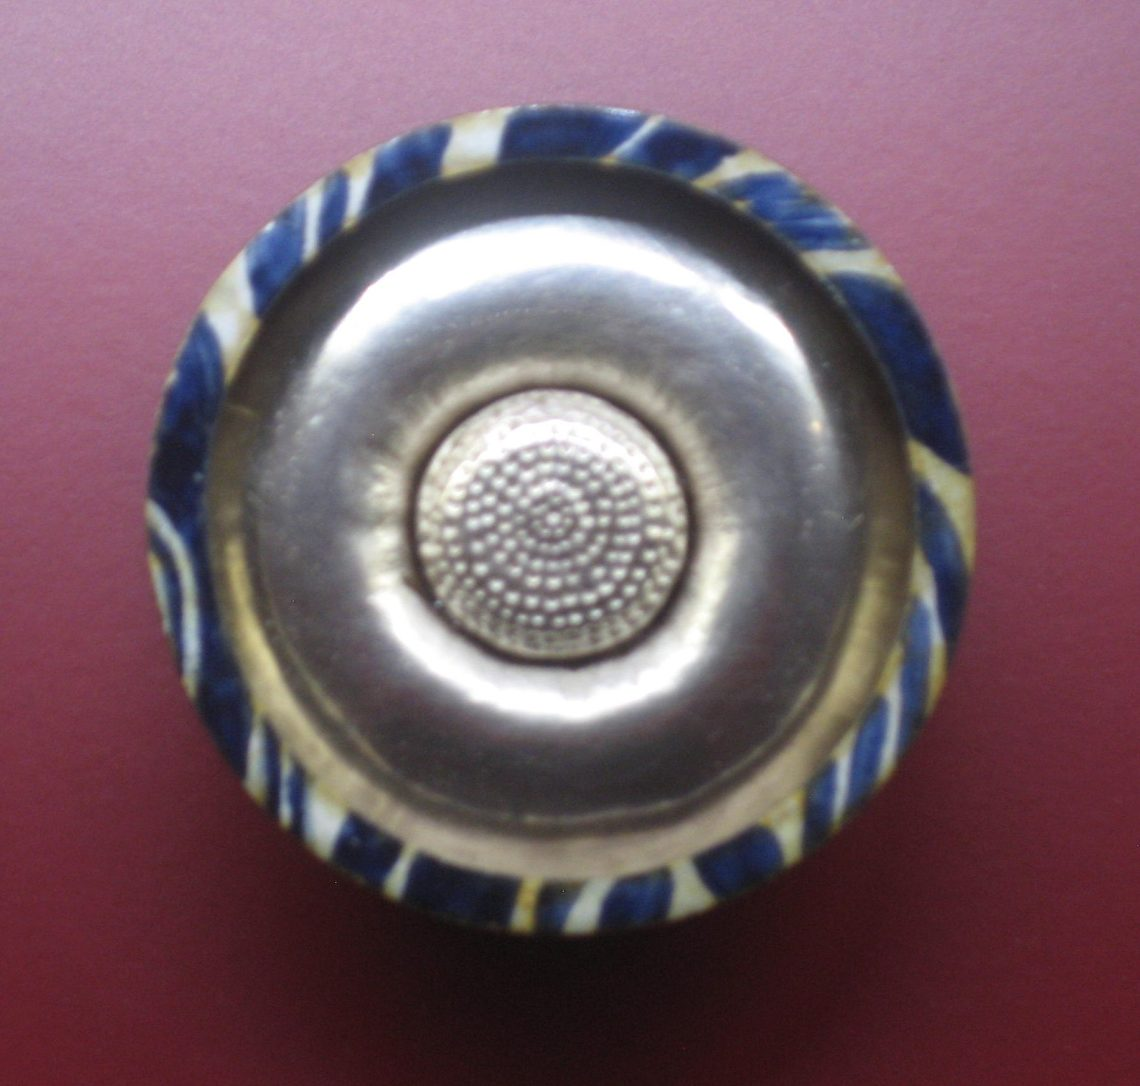 Uta Feiler, broche, 1977. Collectie Angermuseum, VIII 724 (S 23-90). Foto Esther Doornbusch, CC BY 4.0